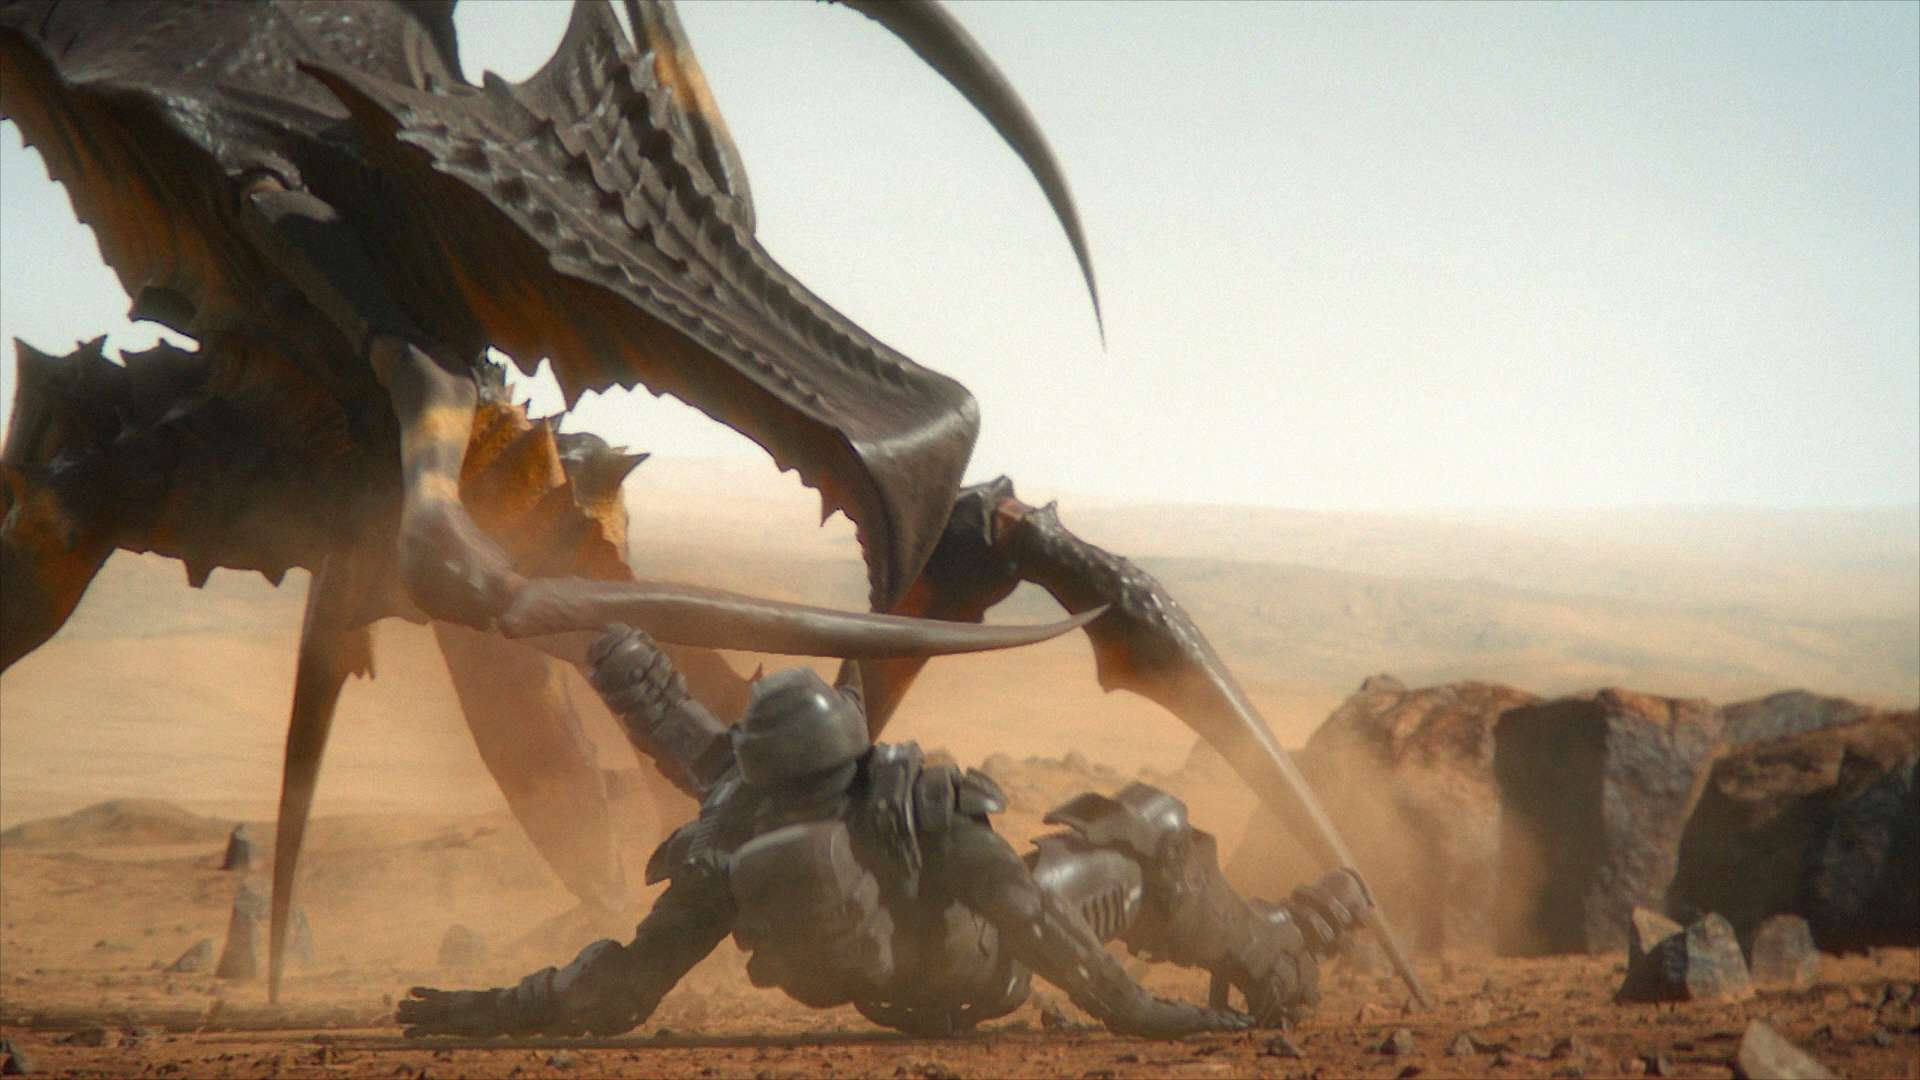 Starship Troopers terminé 0932ad12